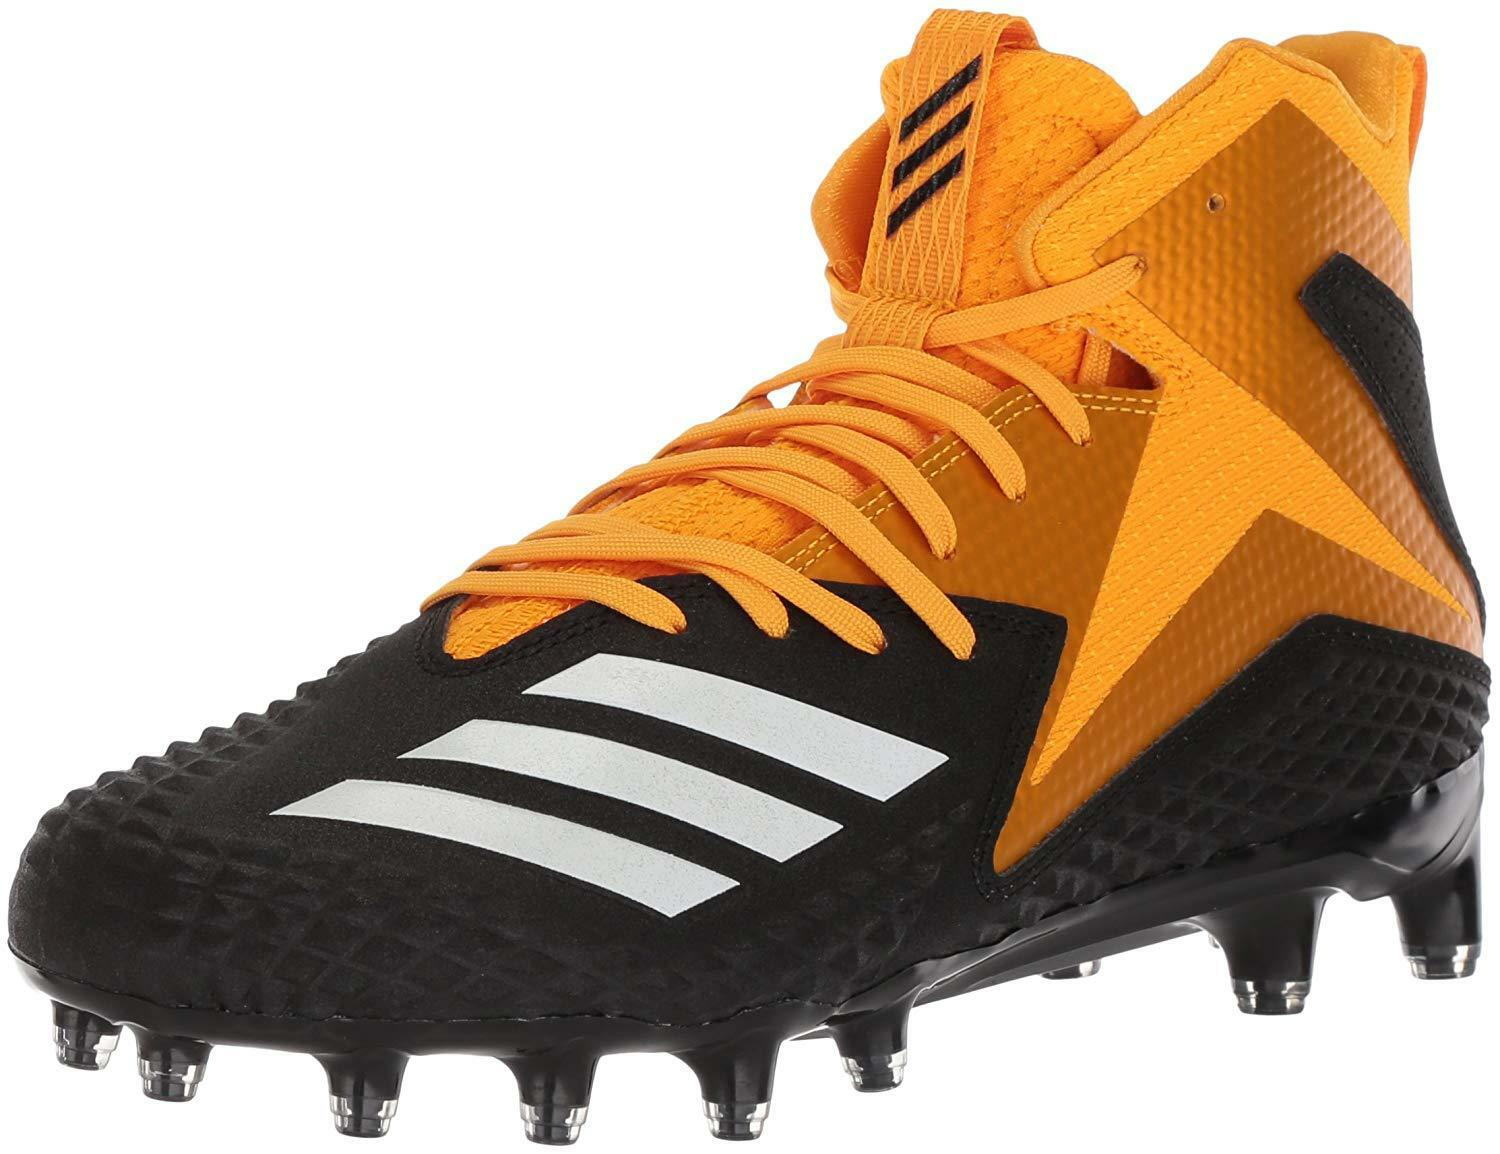 Adidas  Uomo Freak X Carbon Up mid Niedrig Top Lace Up Carbon Soccer Sneaker 8a3cc7